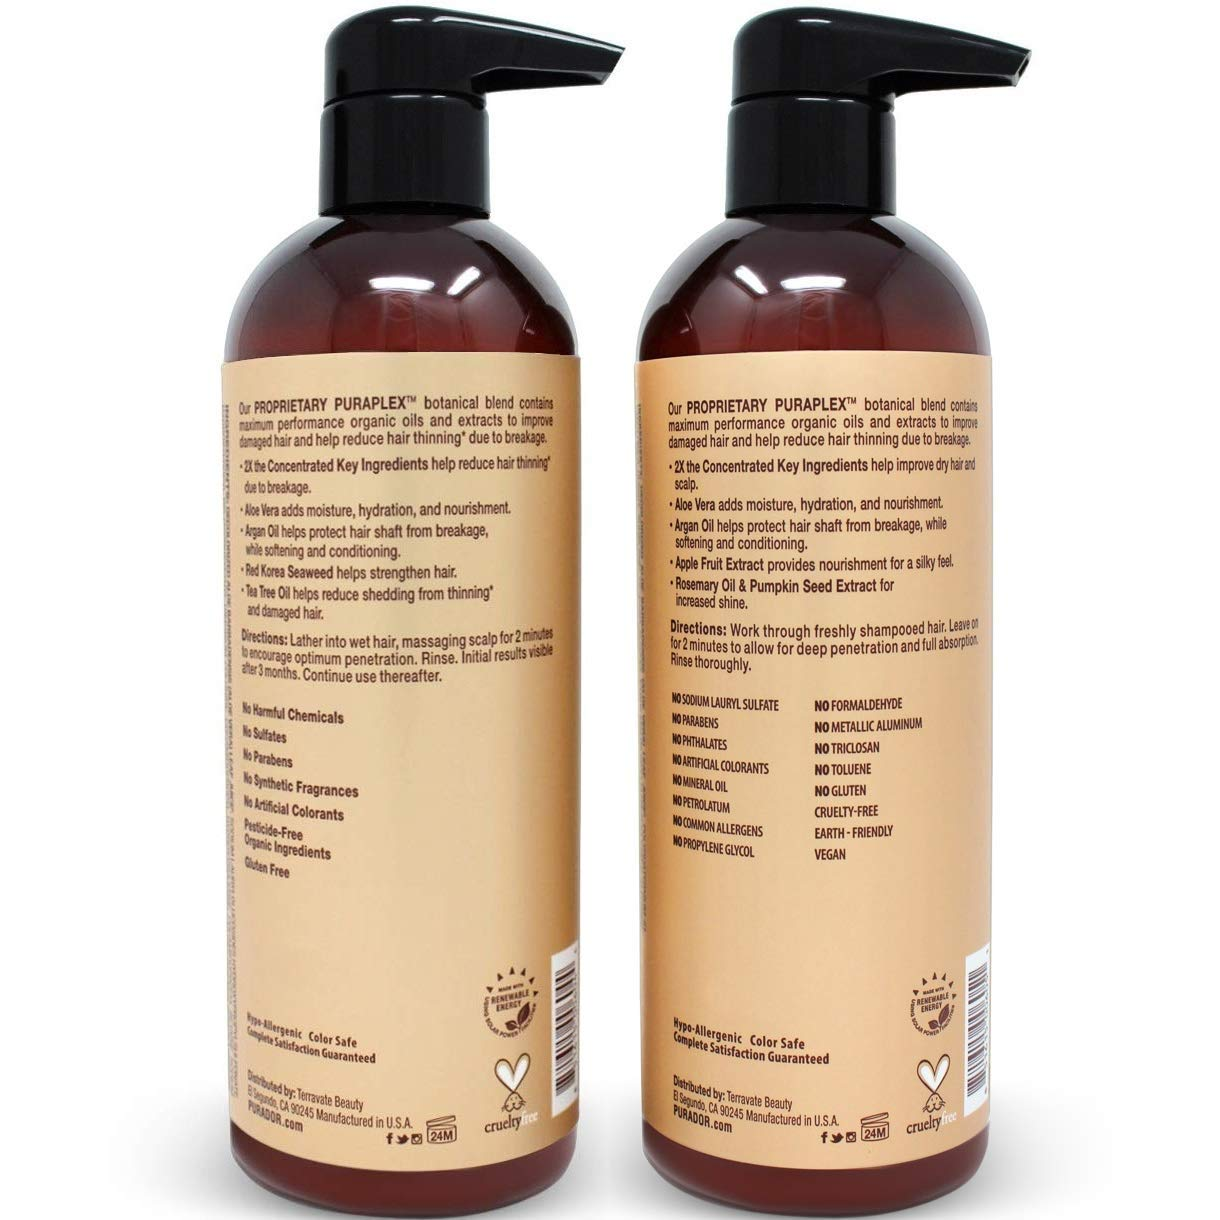 PURA D'OR Professional Grade Golden Biotin Anti-Hair Thinning 2X Concentrated Actives Shampoo & Conditioner Set, Sulfate Free, Natural Ingredients, Clinically Tested, Men & Women (Packaging may vary) by PURA D'OR (Image #3)